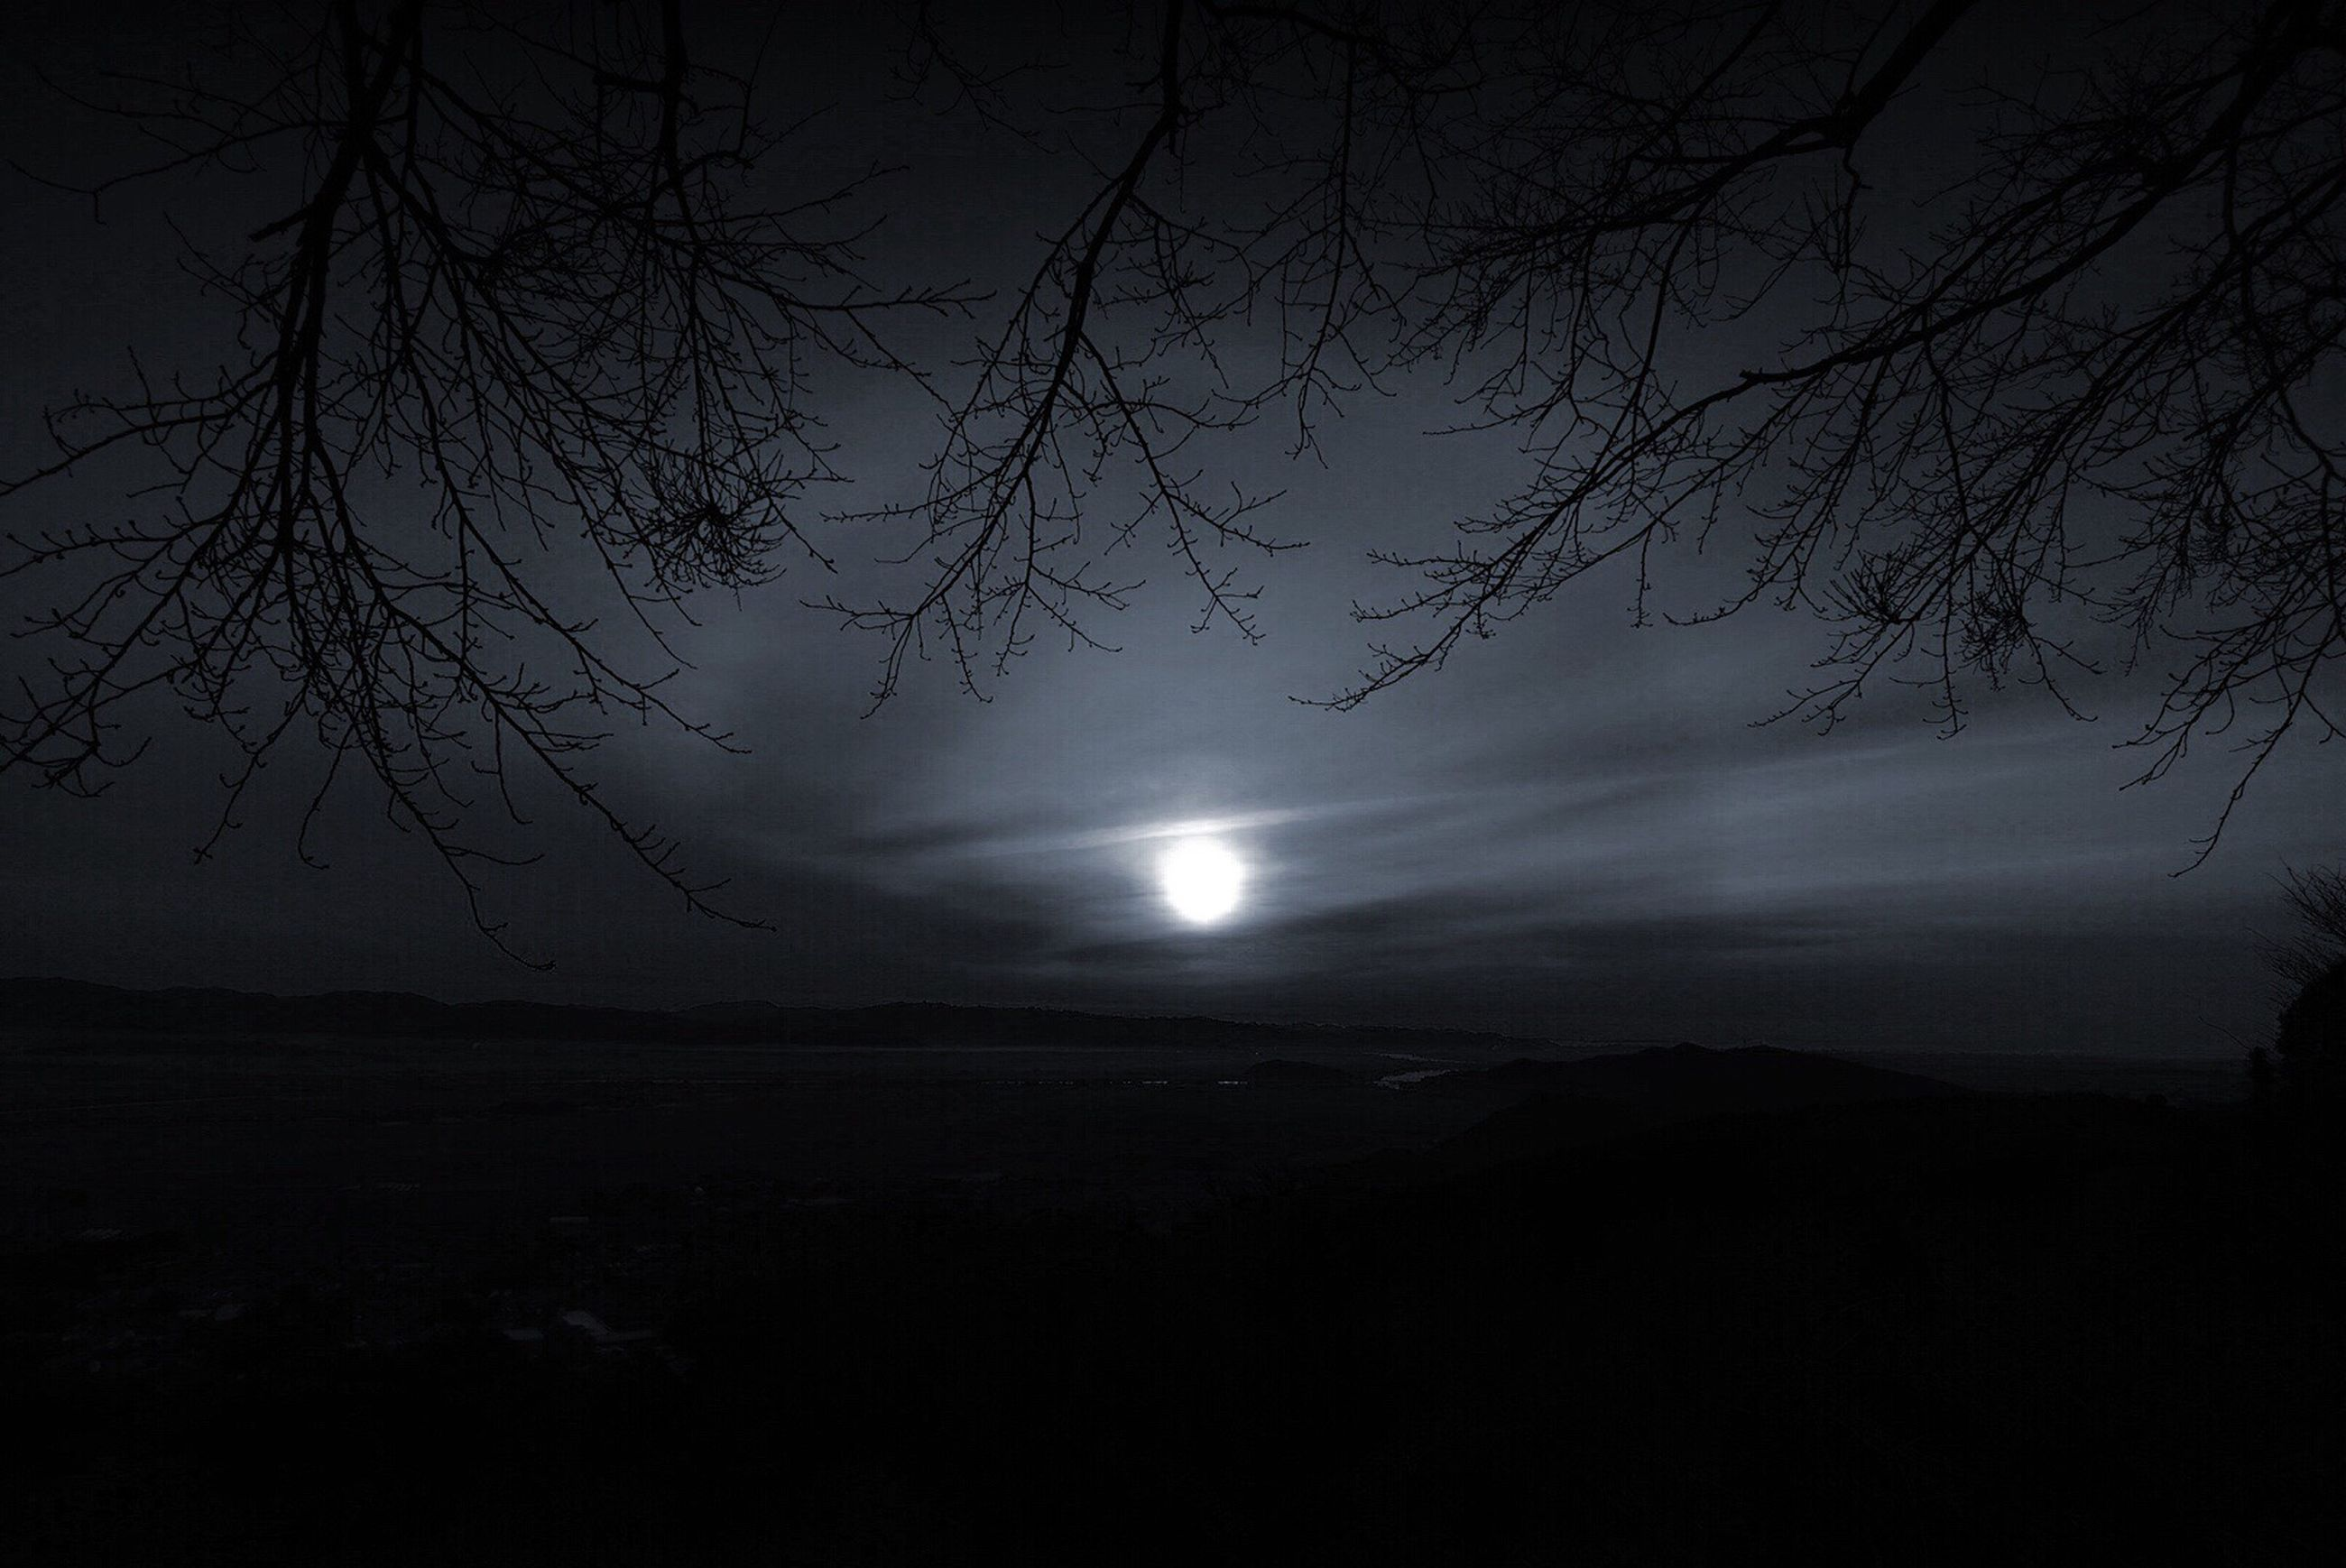 nature, beauty in nature, tranquility, tranquil scene, scenics, night, sky, idyllic, outdoors, tree, no people, horizon over water, moon, astronomy